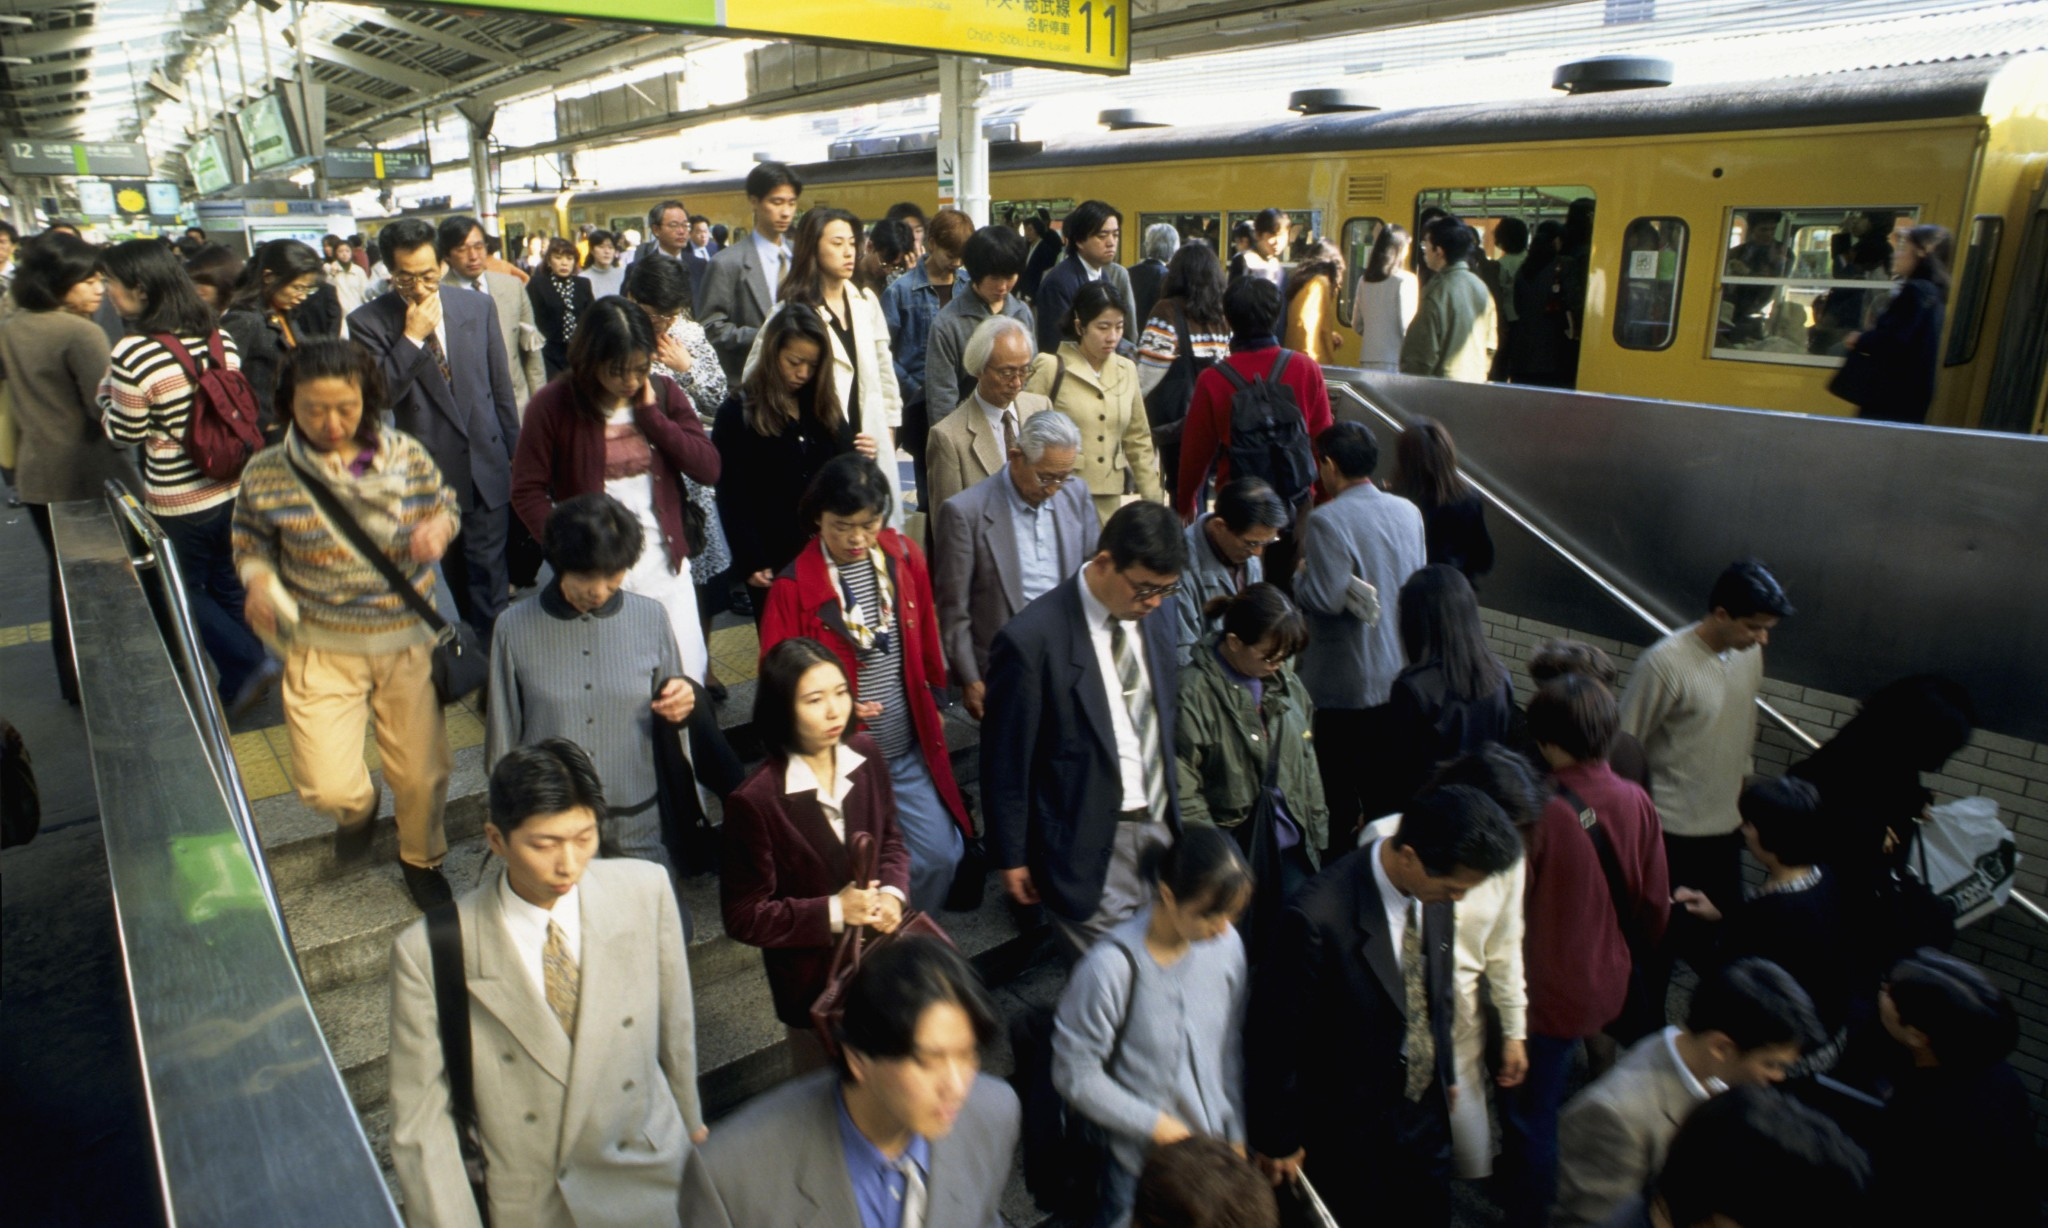 Japan's population declines for first time since 1920s – official census